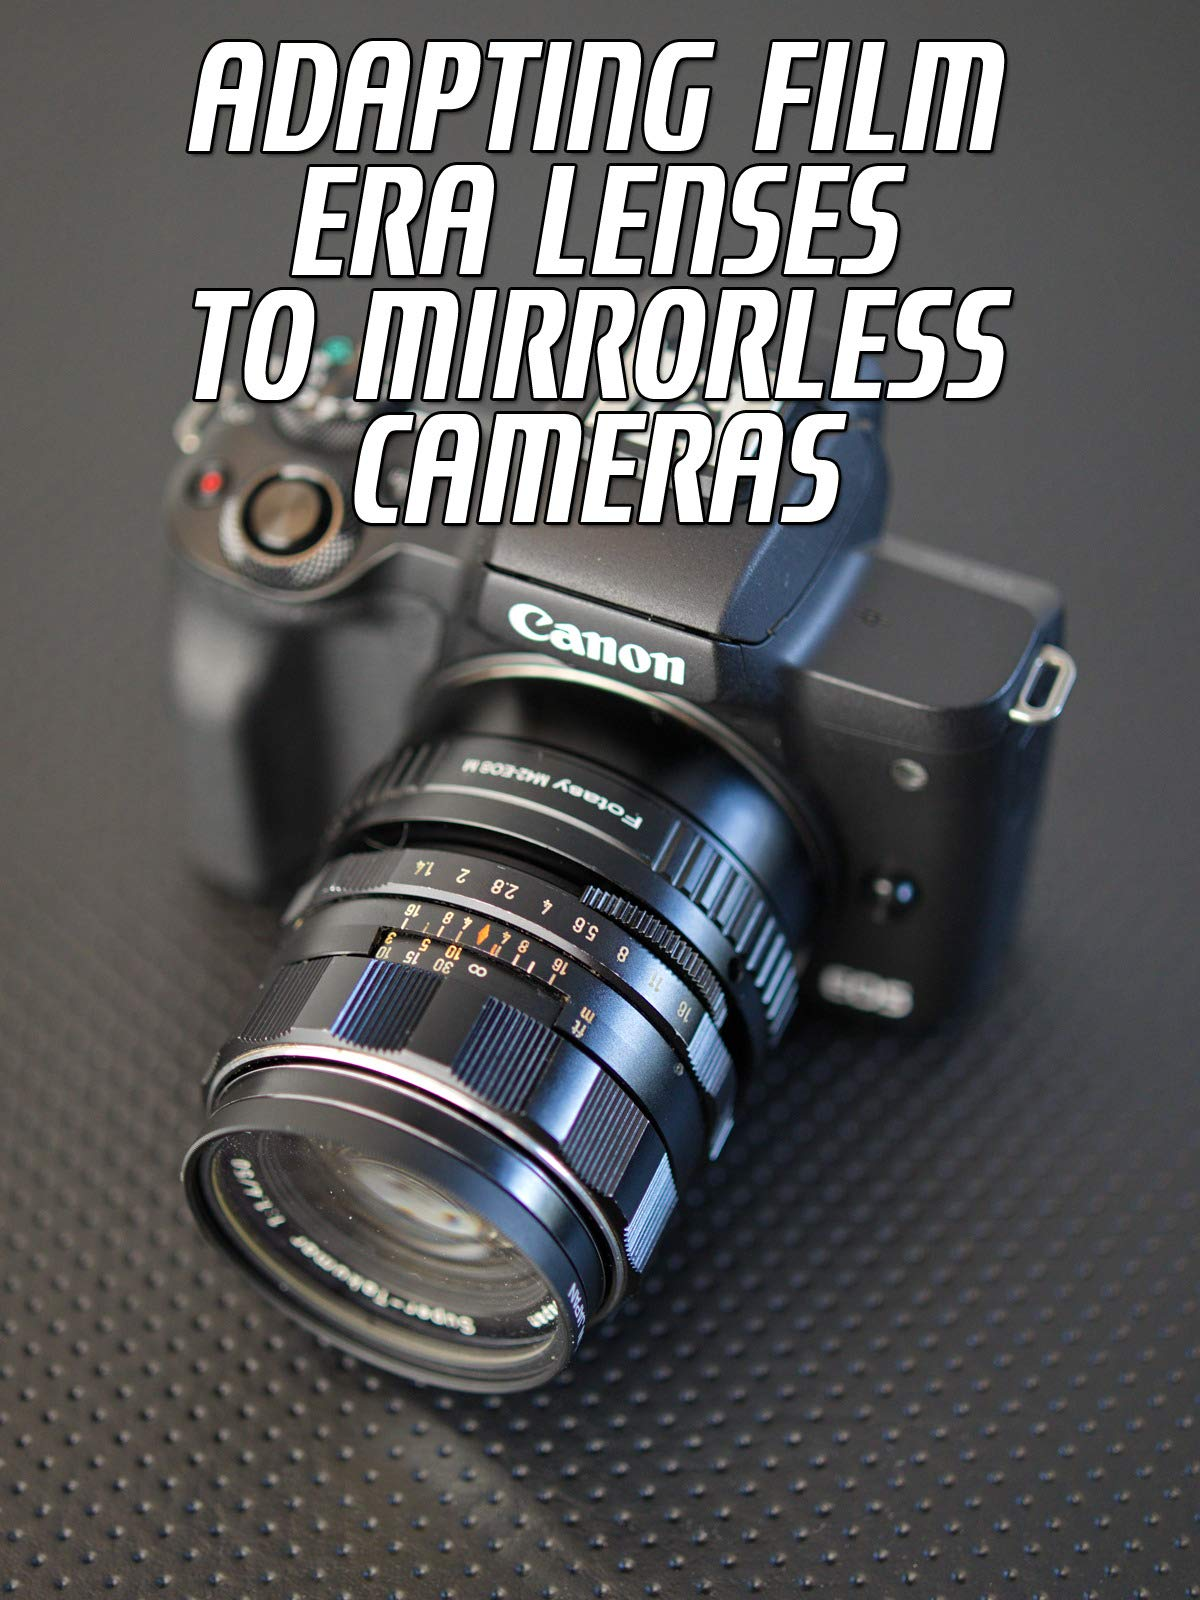 Adapting Film Era Lenses To Mirrorless Cameras